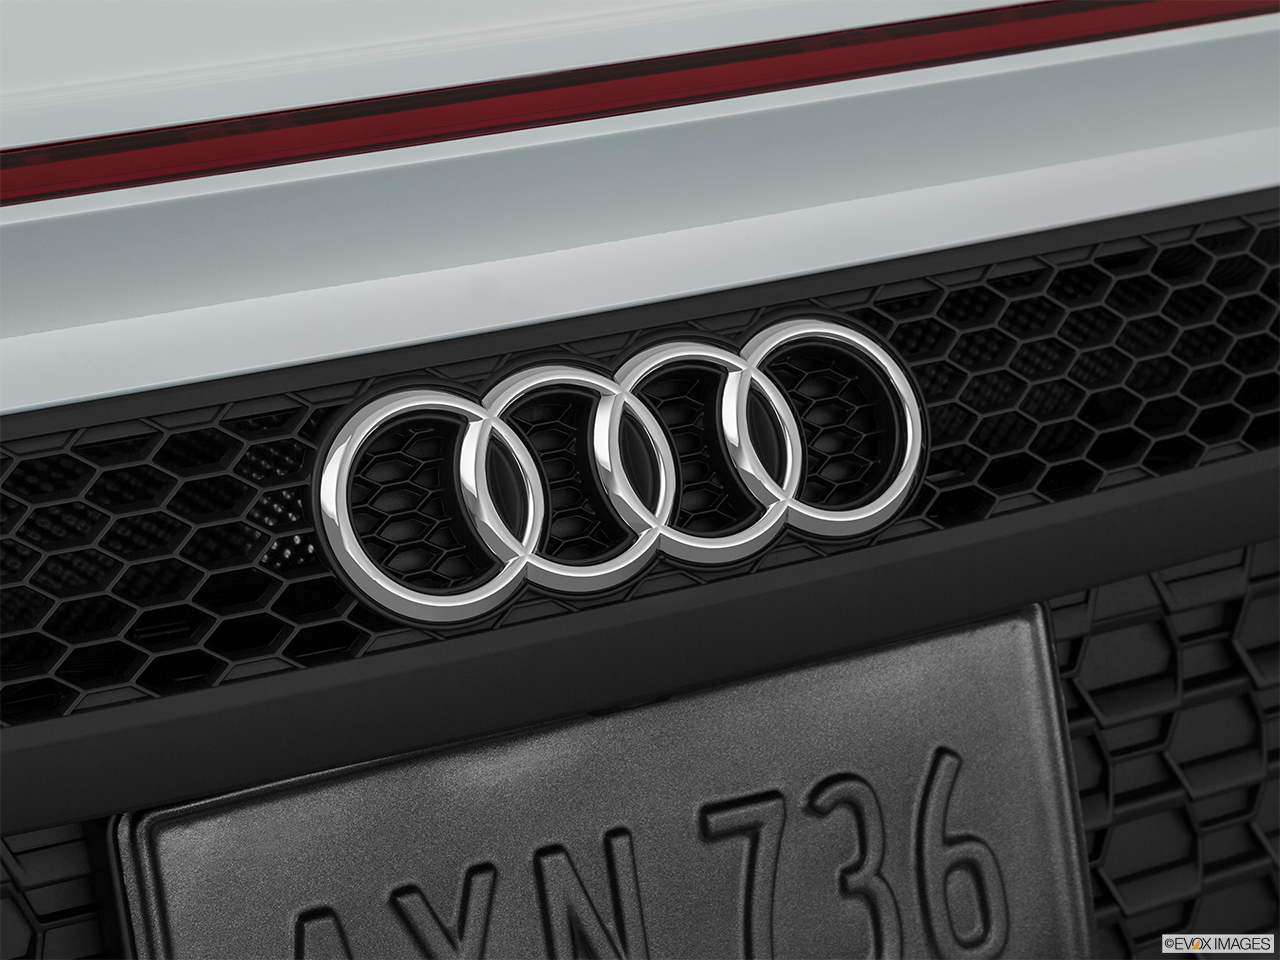 2020 Audi R8 Spyder V10 Rear manufacture badge/emblem